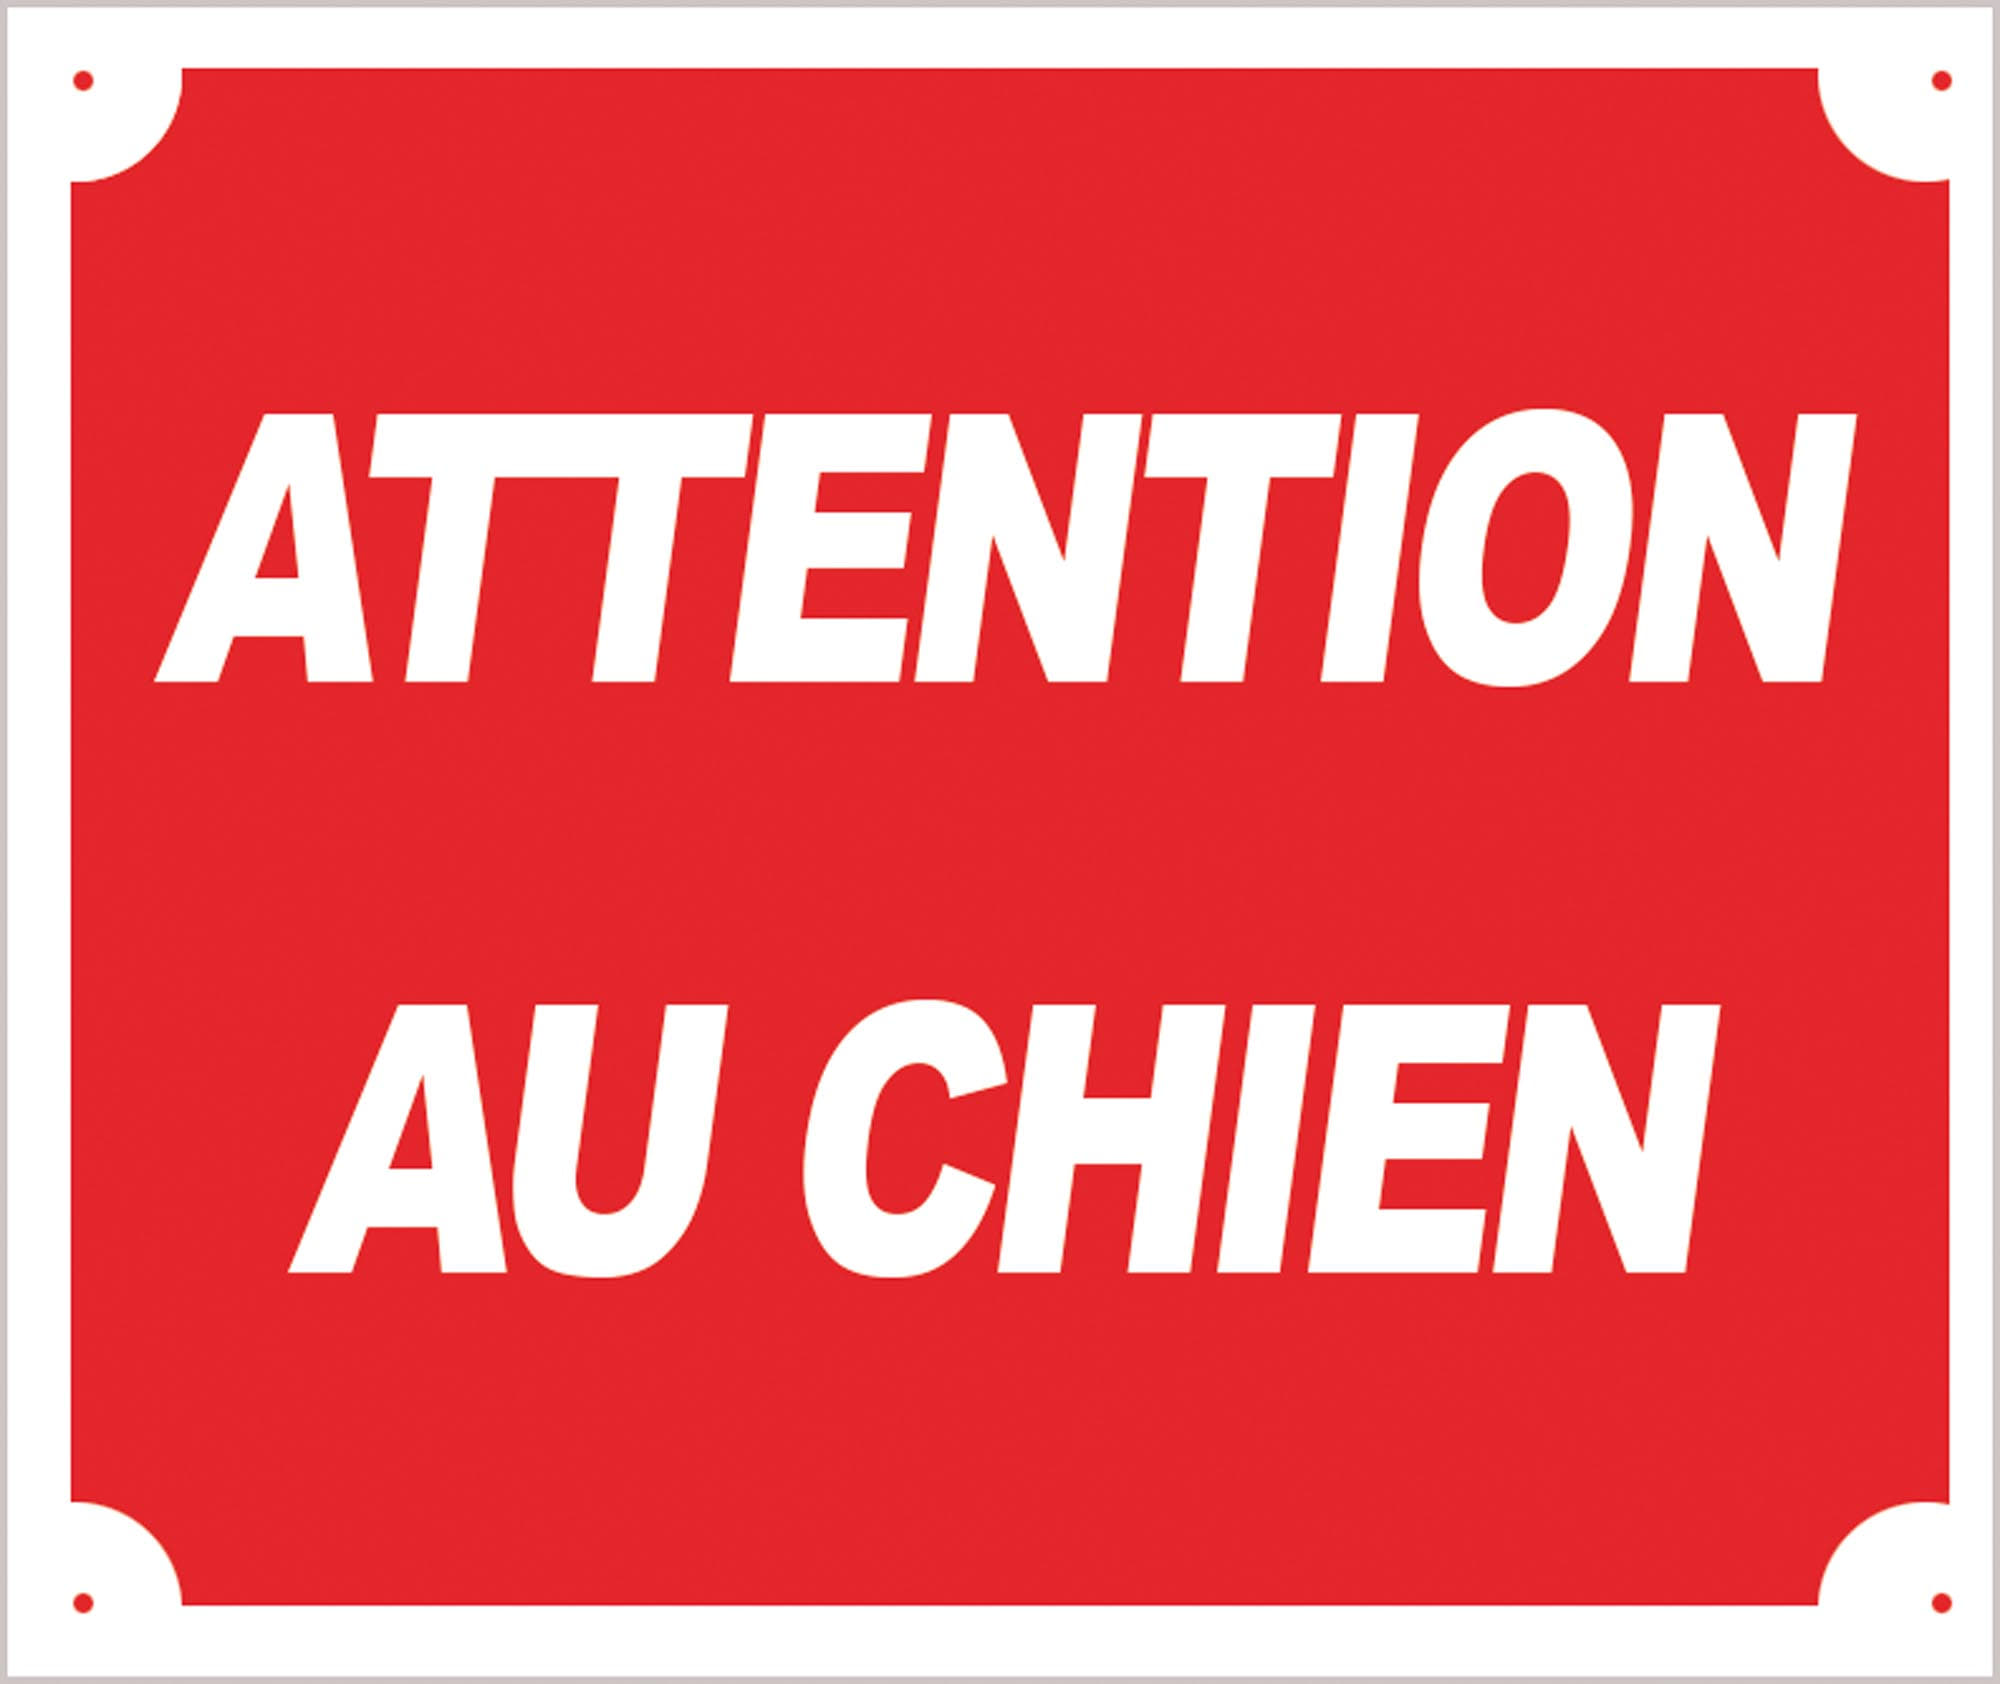 ATTENTION AU CHIEN - A50865